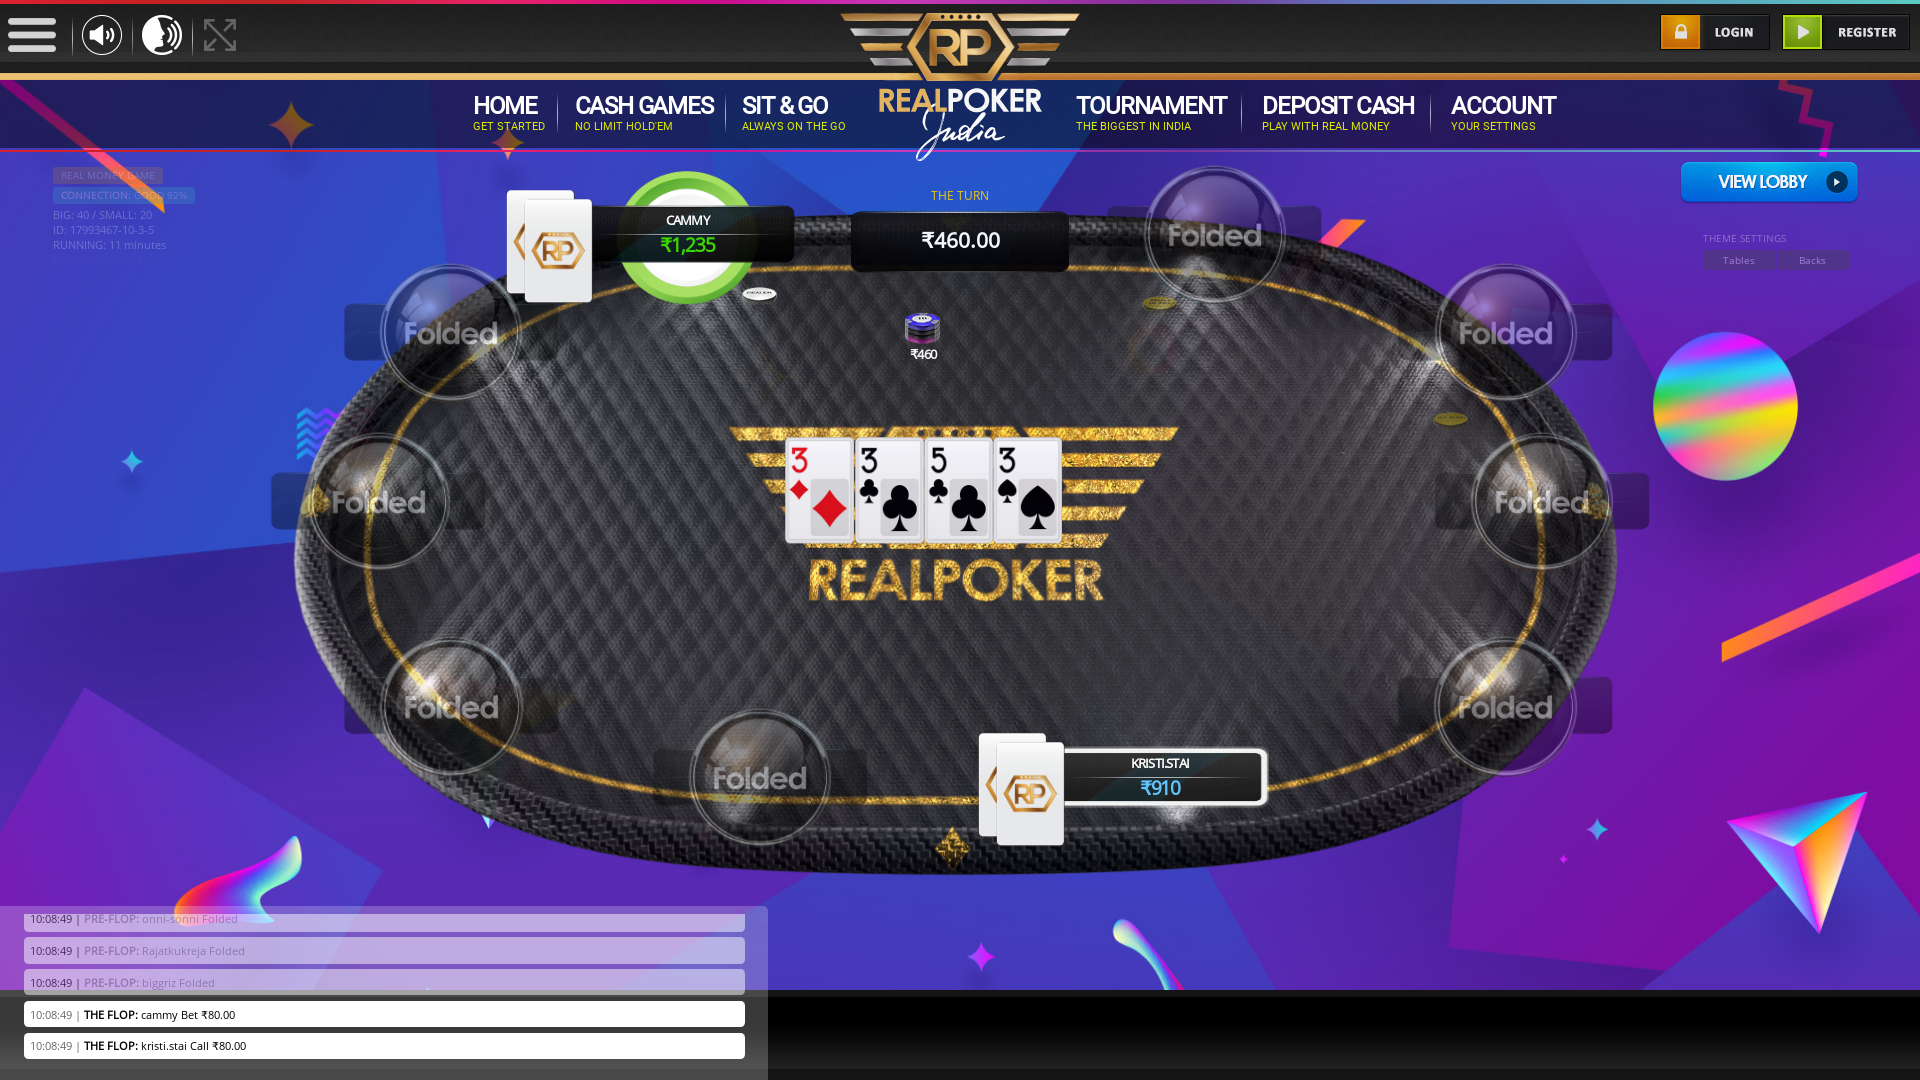 Koregaon Park, Pune Poker Website from July